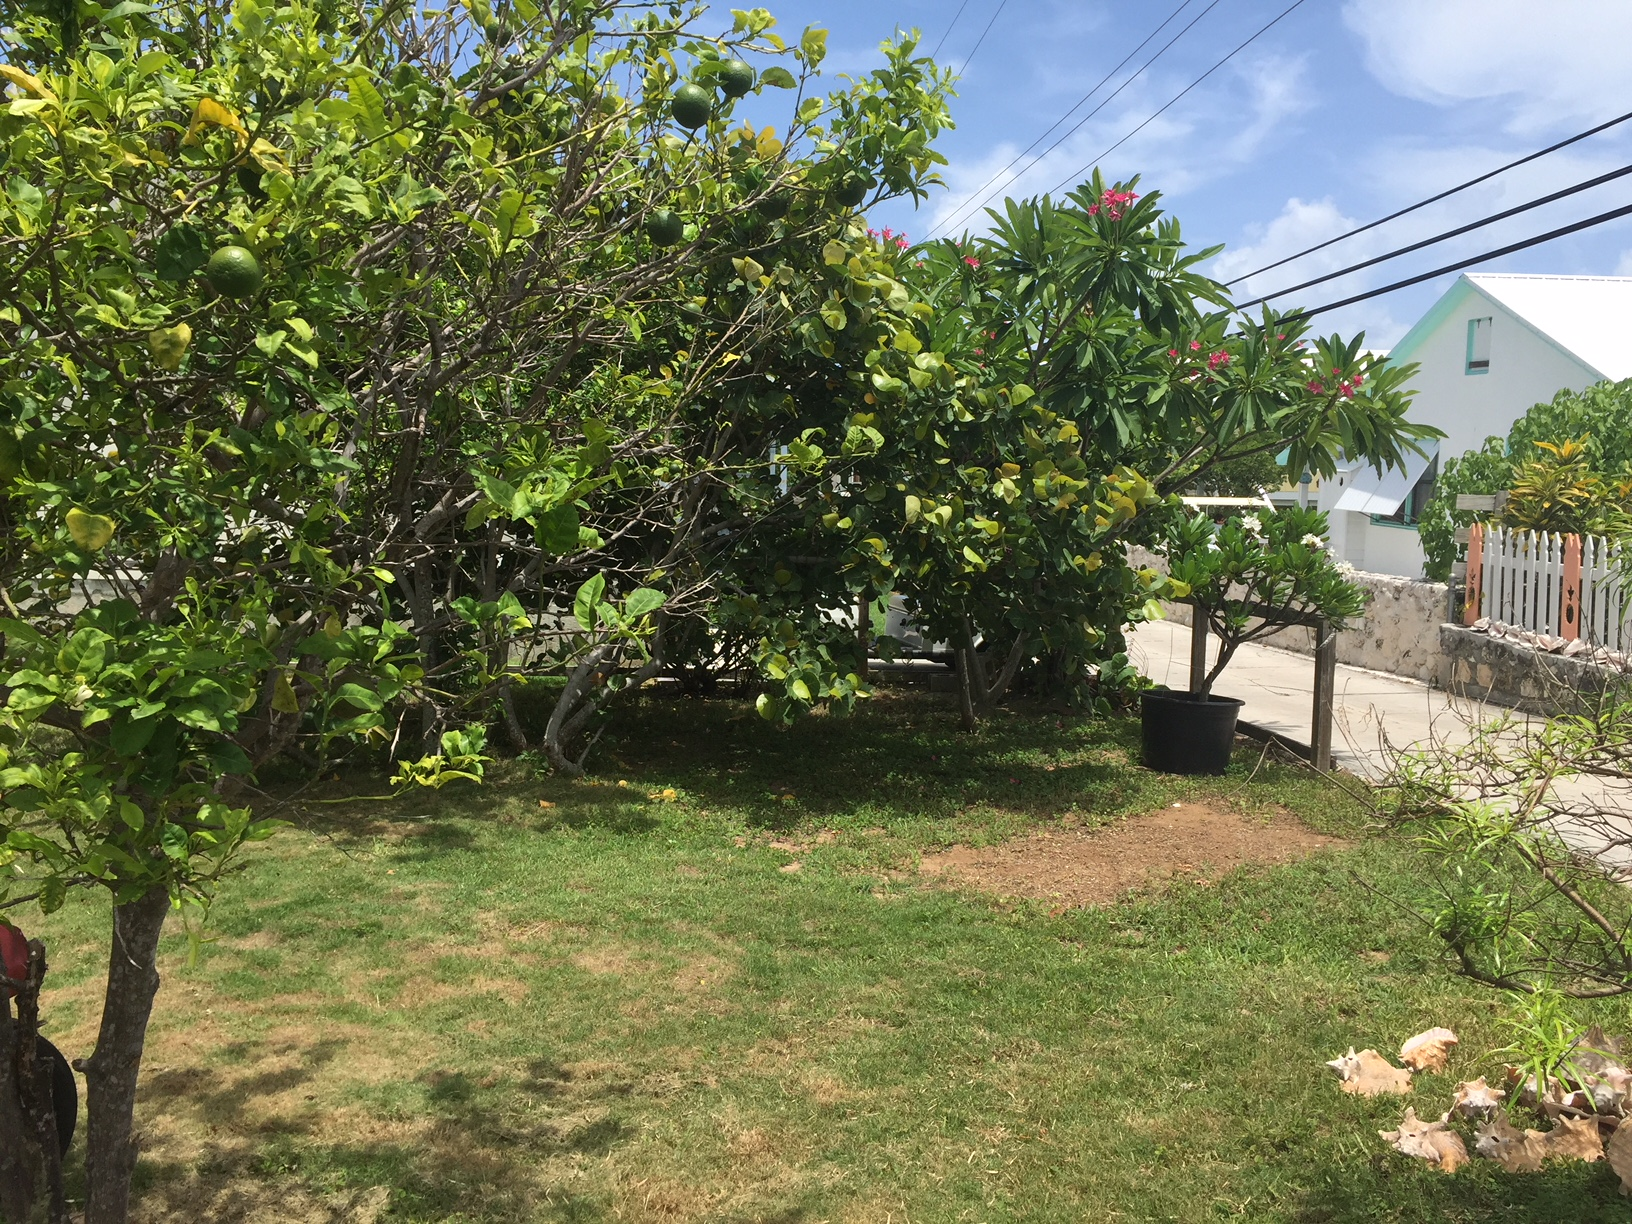 Man O War Cay land for sale with fruit trees sour oranges frangipani